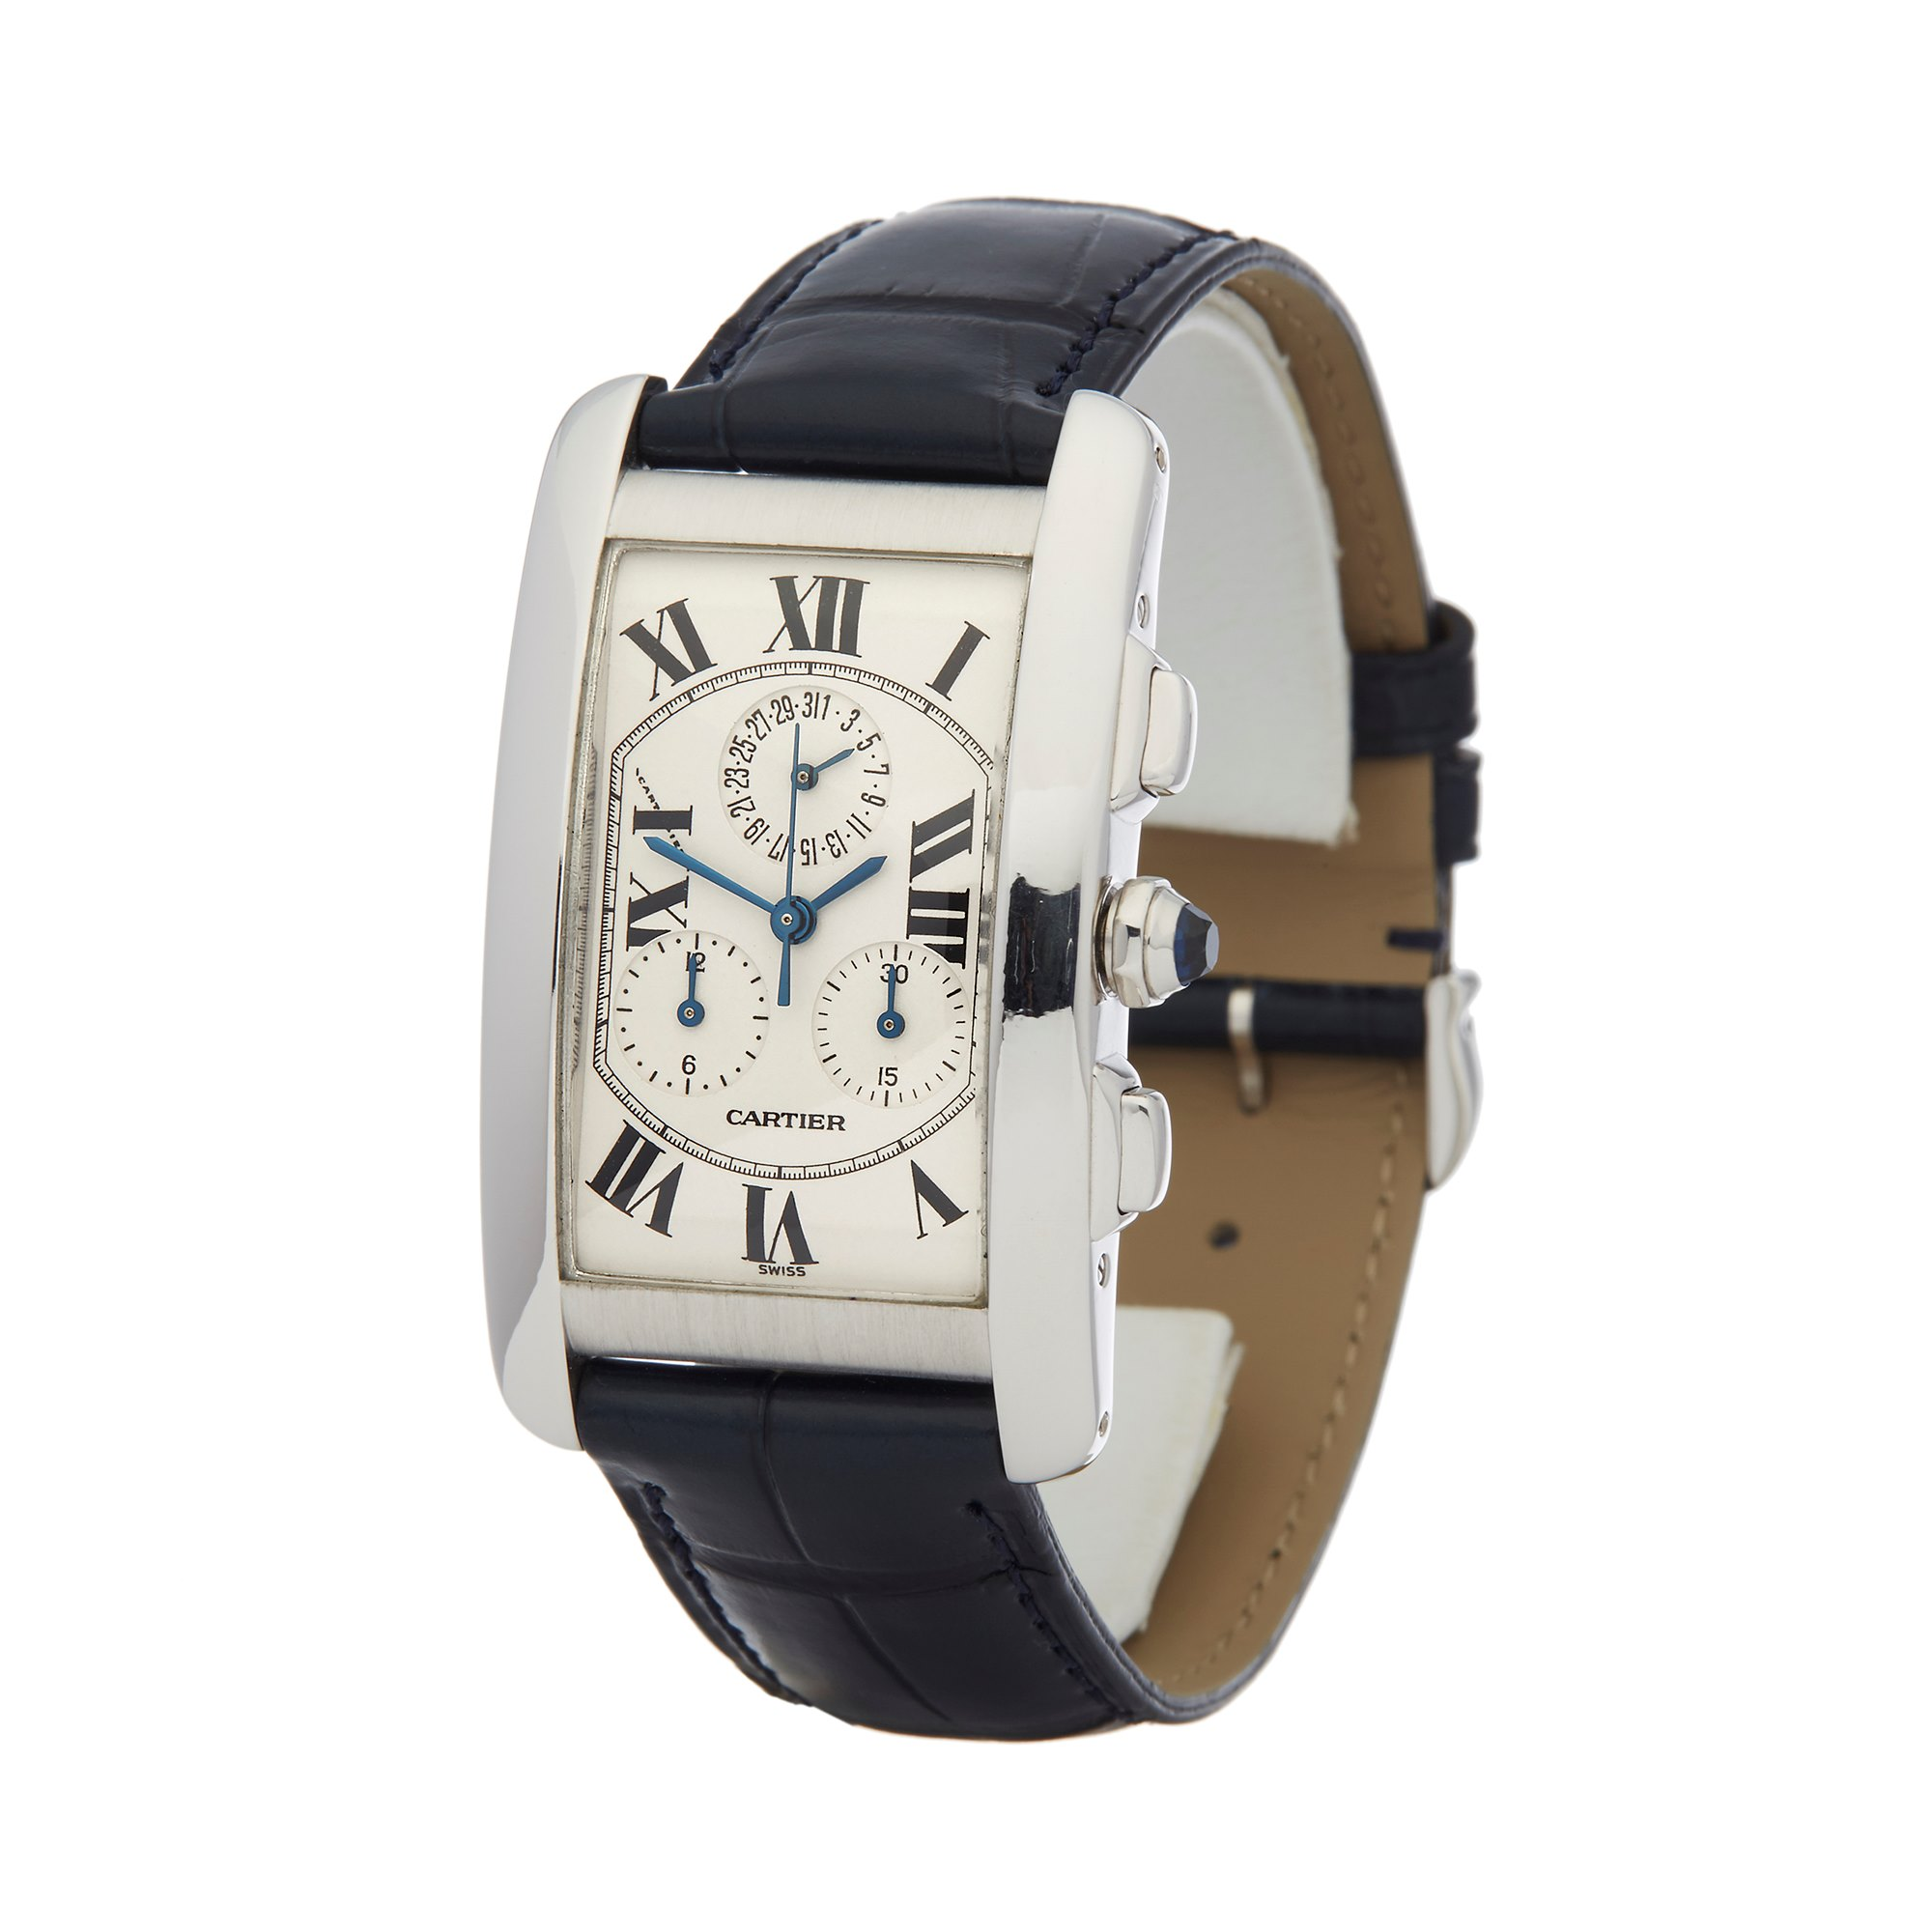 Cartier Tank Americaine Chronograph White Gold 2312